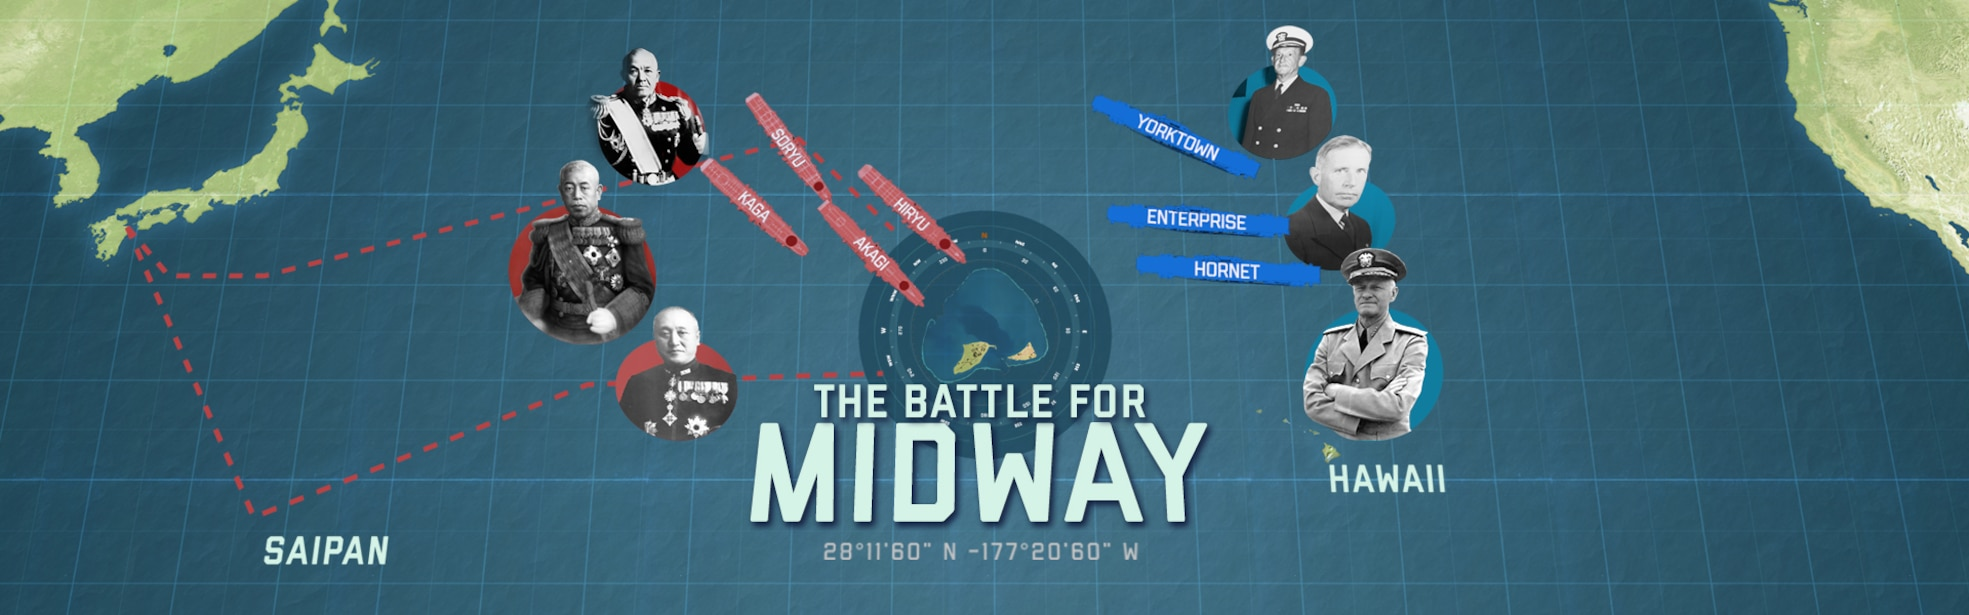 The Battle for Midway written in the ocean with admirals surrounding it.